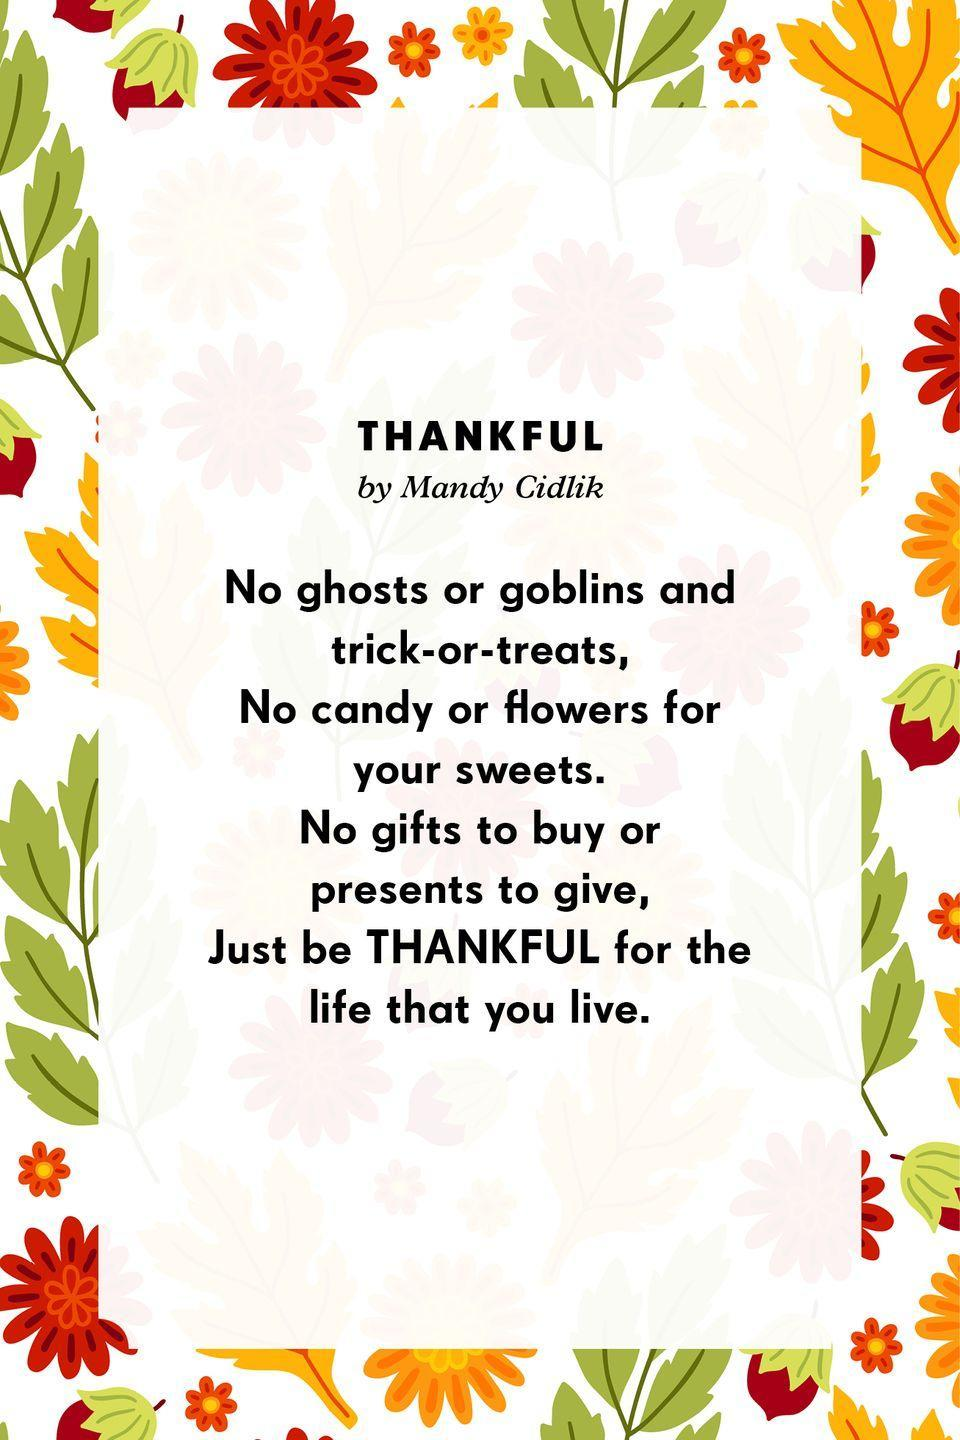 <p><strong>Thankful</strong> </p><p>No ghosts or goblins and trick-or-treats,<br>No candy or flowers for your sweets.<br>No gifts to buy or presents to give,<br>Just be THANKFUL for the life that you live.</p>